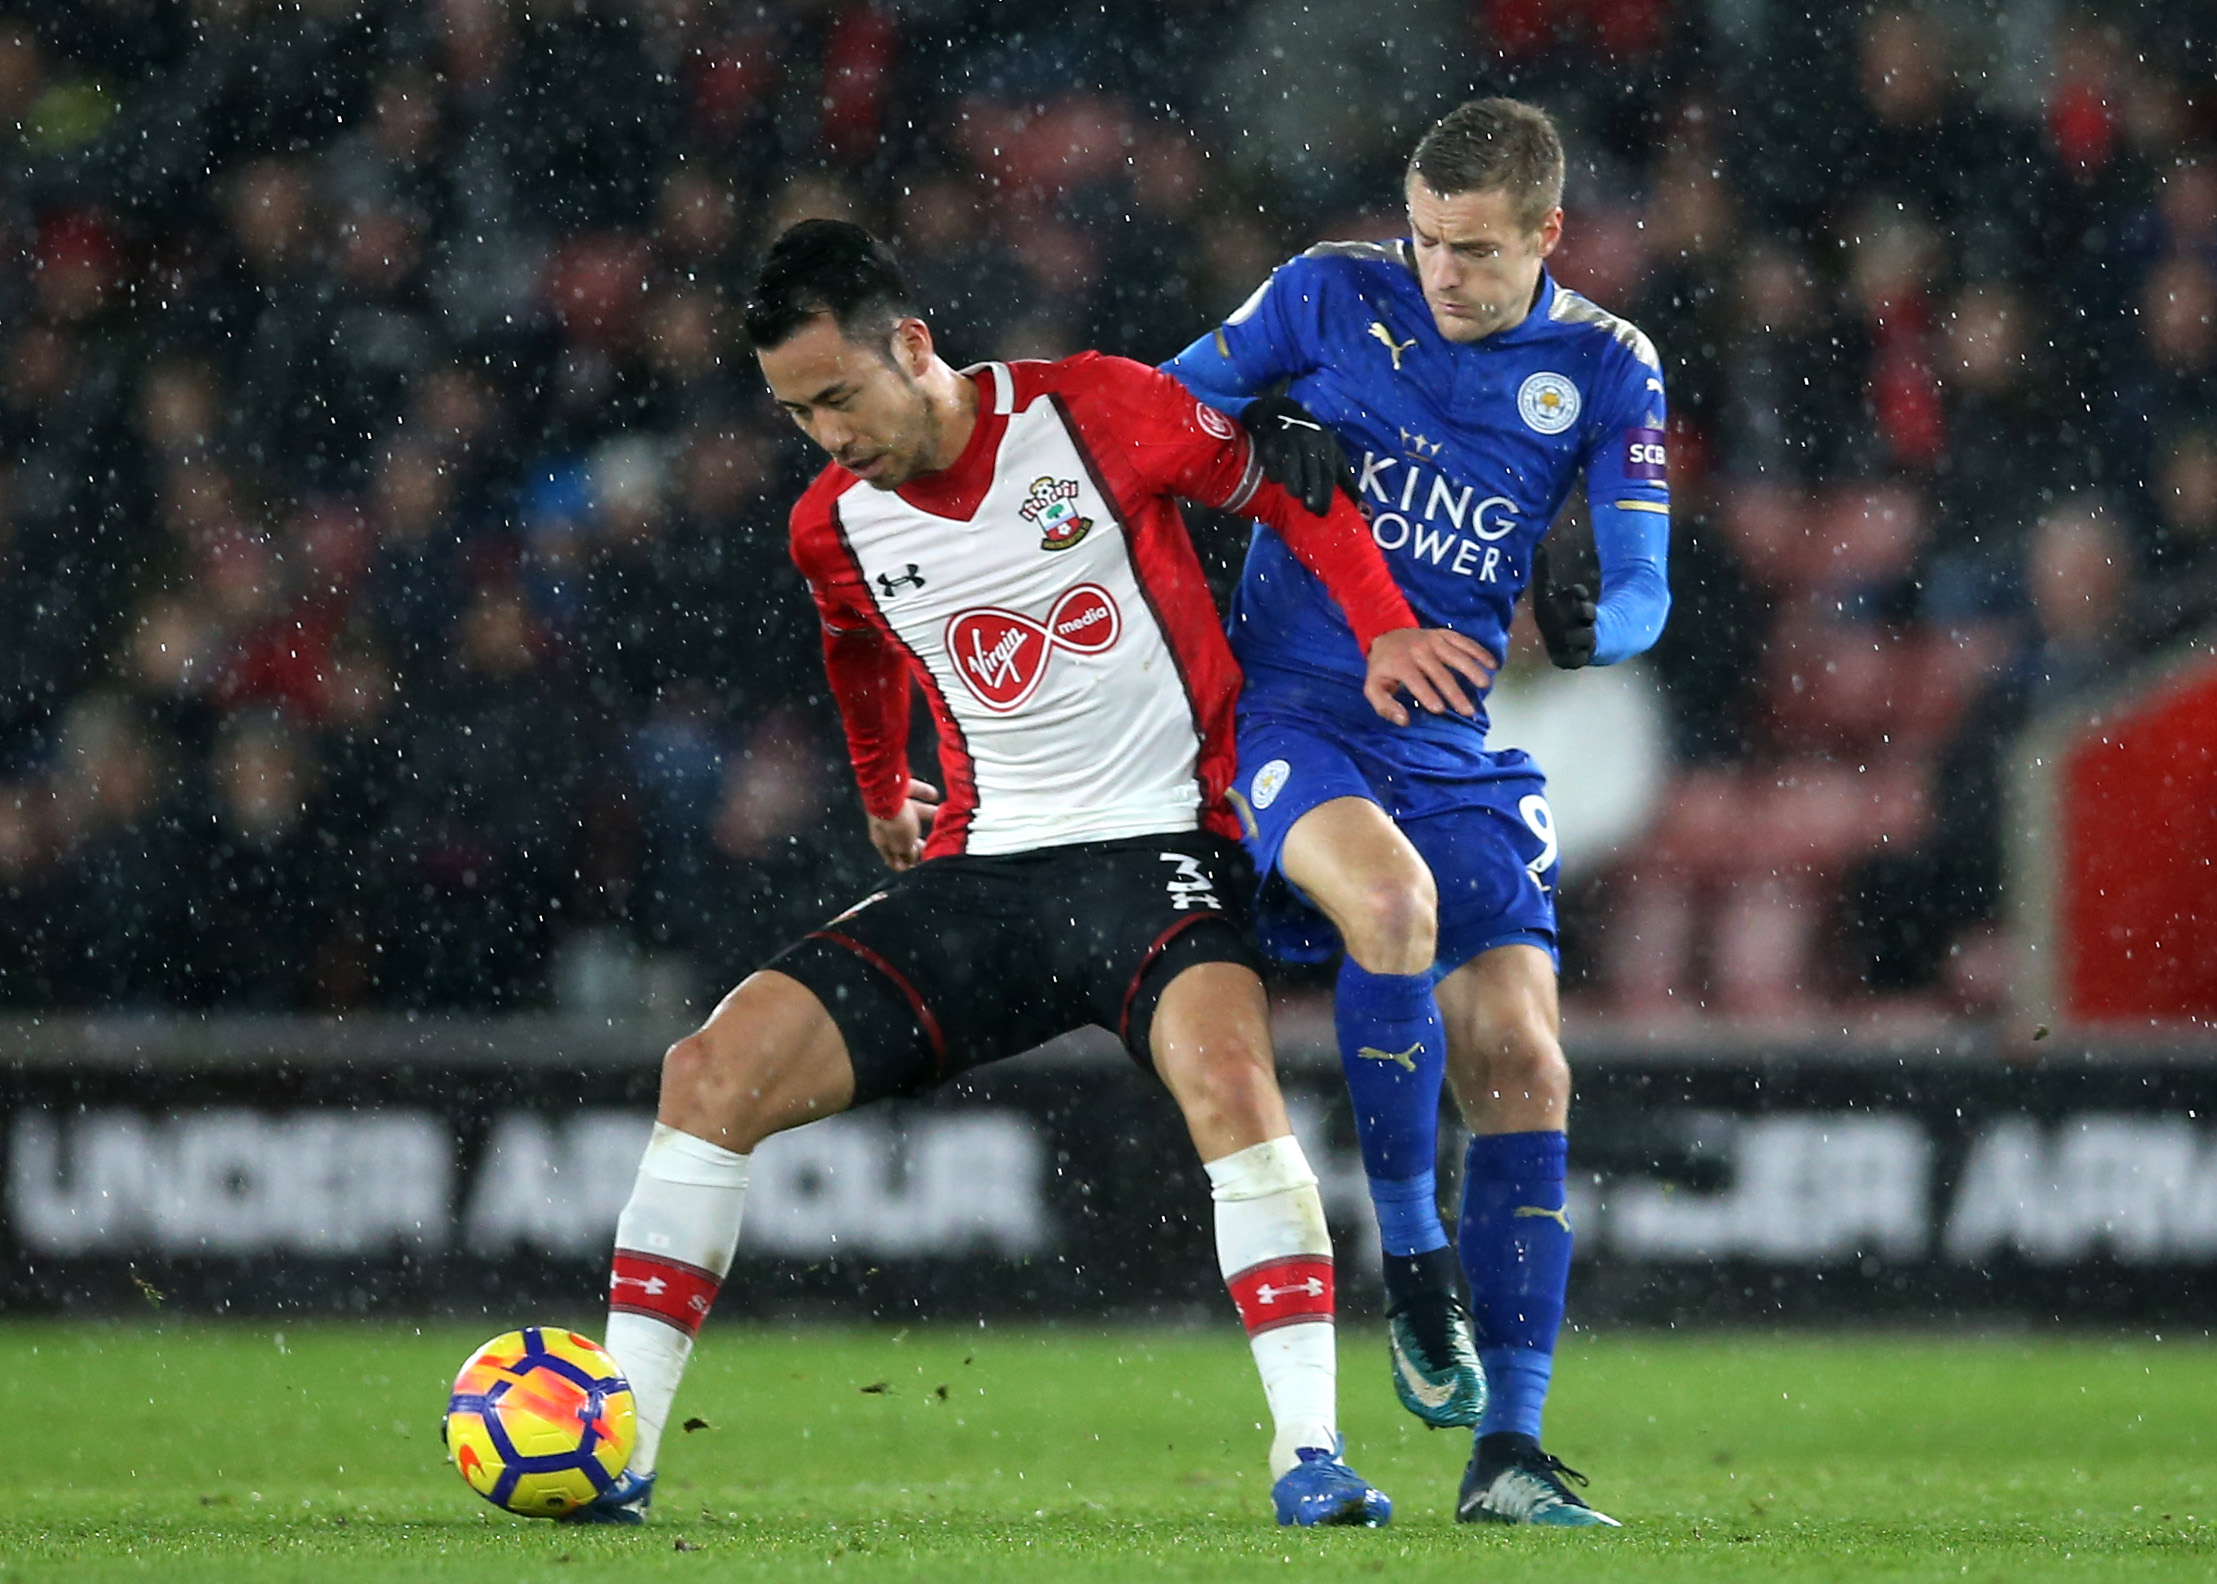 Leicester pounce Southampton 4-1 away from home